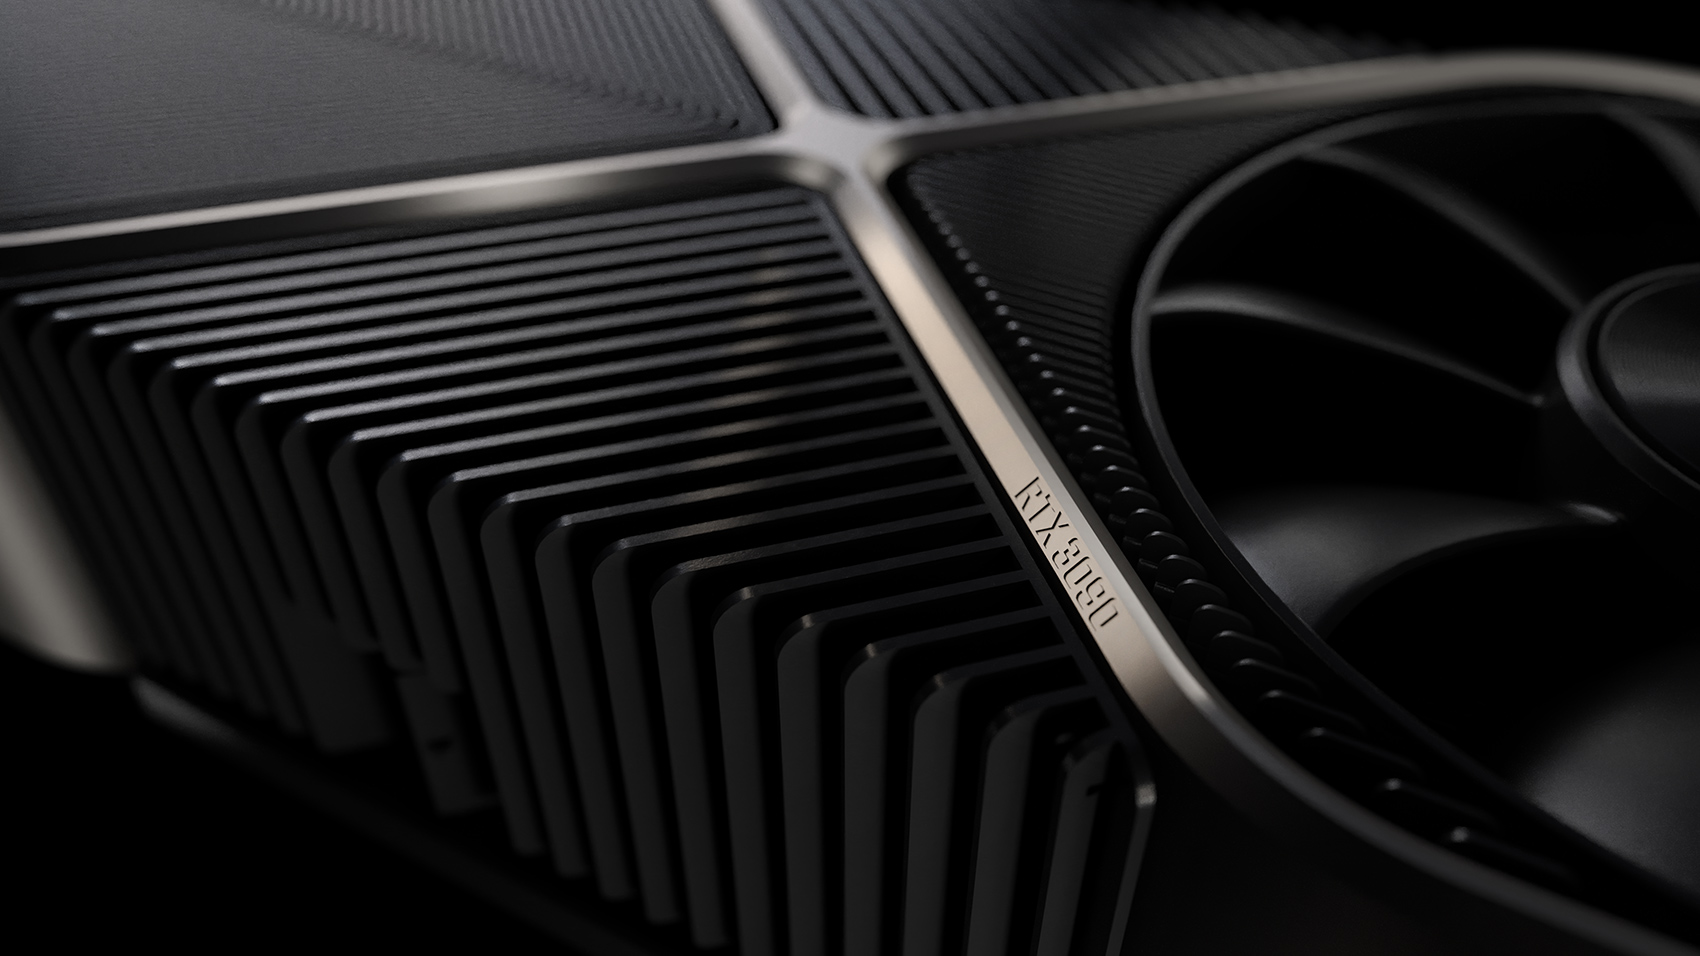 geforce-rtx-3090-product-gallery-inline-850-3@2x